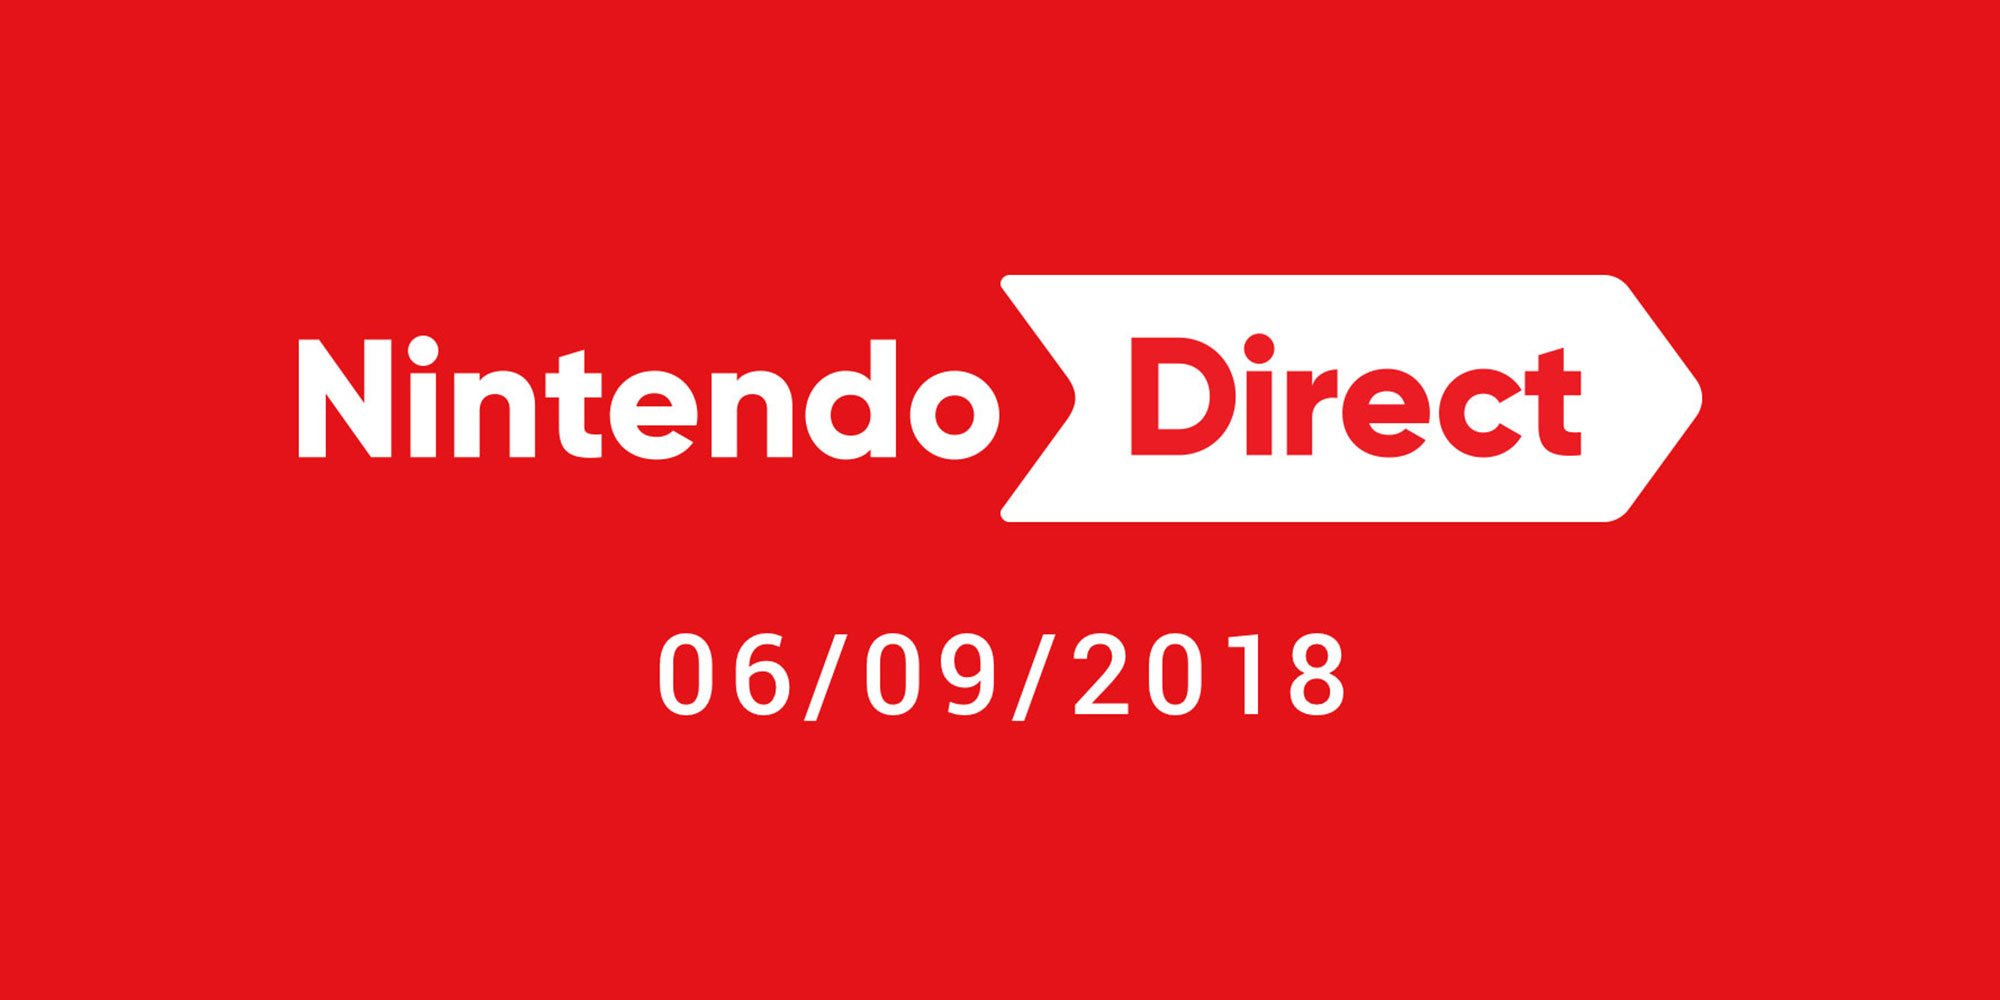 Nintendo Direct Airing Tomorrow To Showcase Upcoming Switch And 3DS